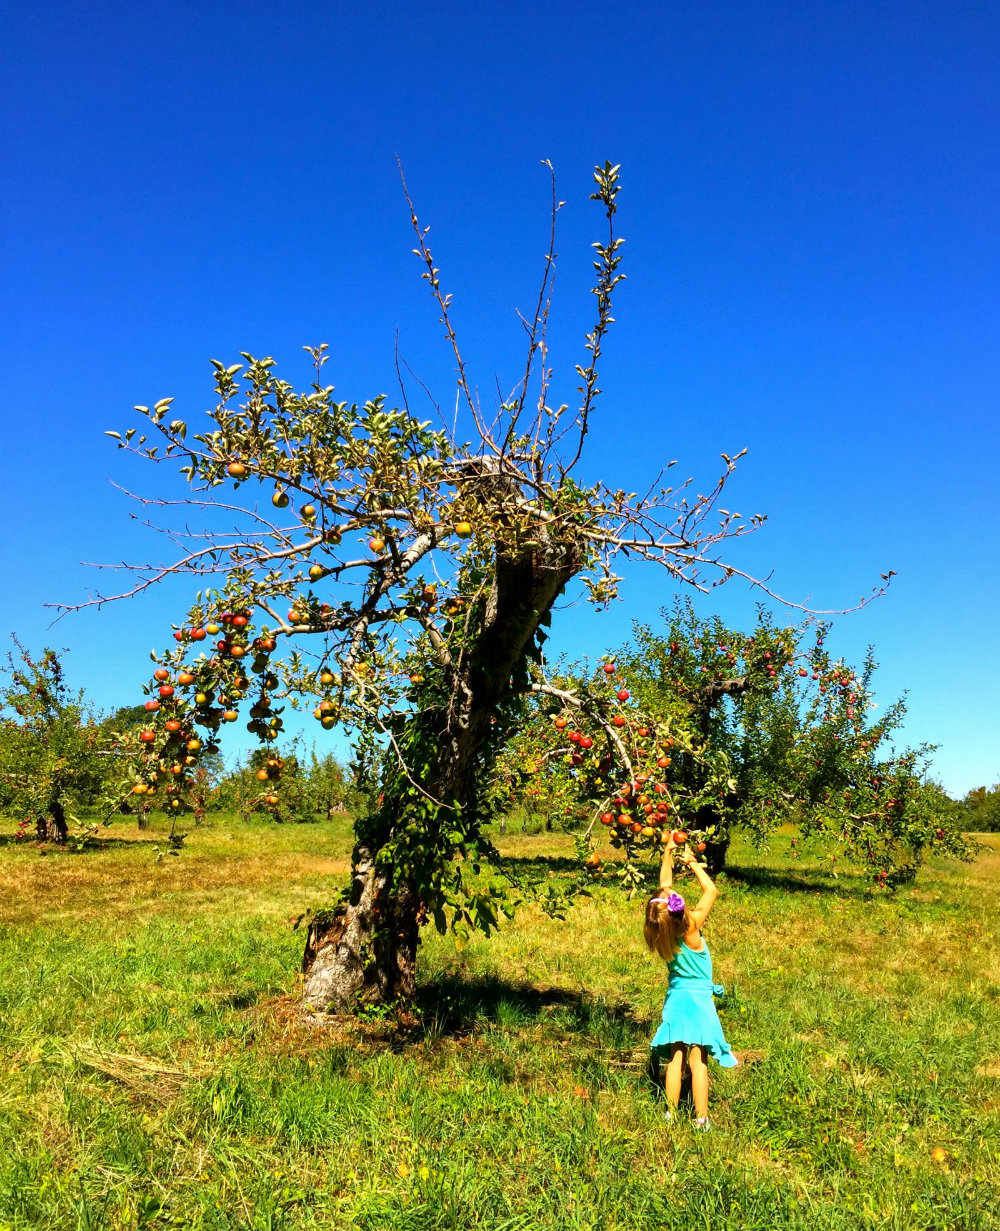 No Frills Apple Picking at Wilkens Fruit and Fir Farm